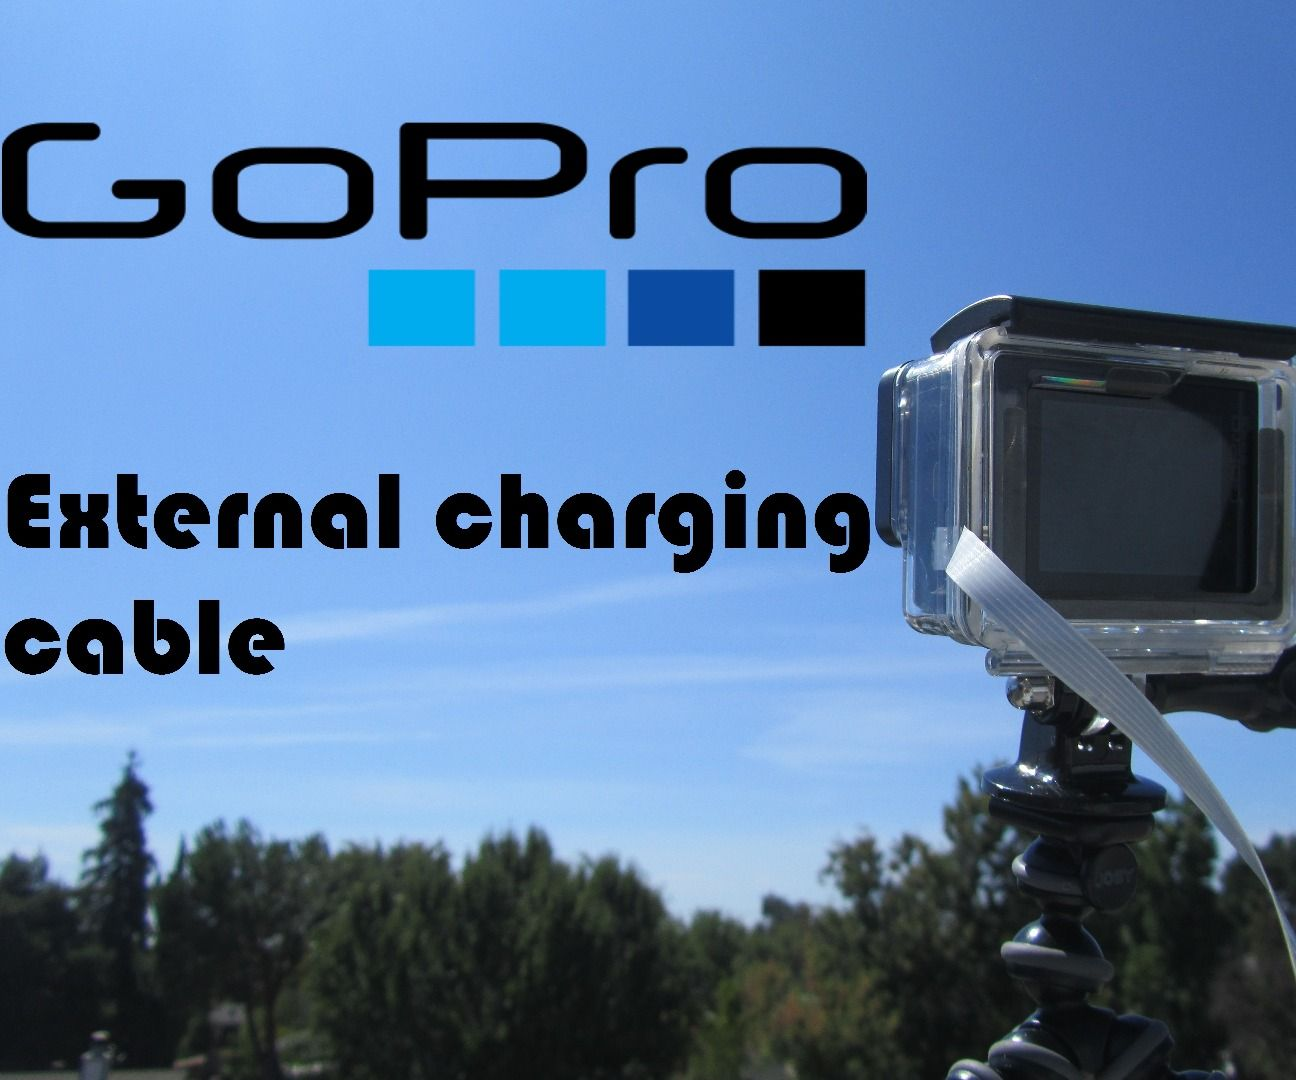 GoPro external charging cable